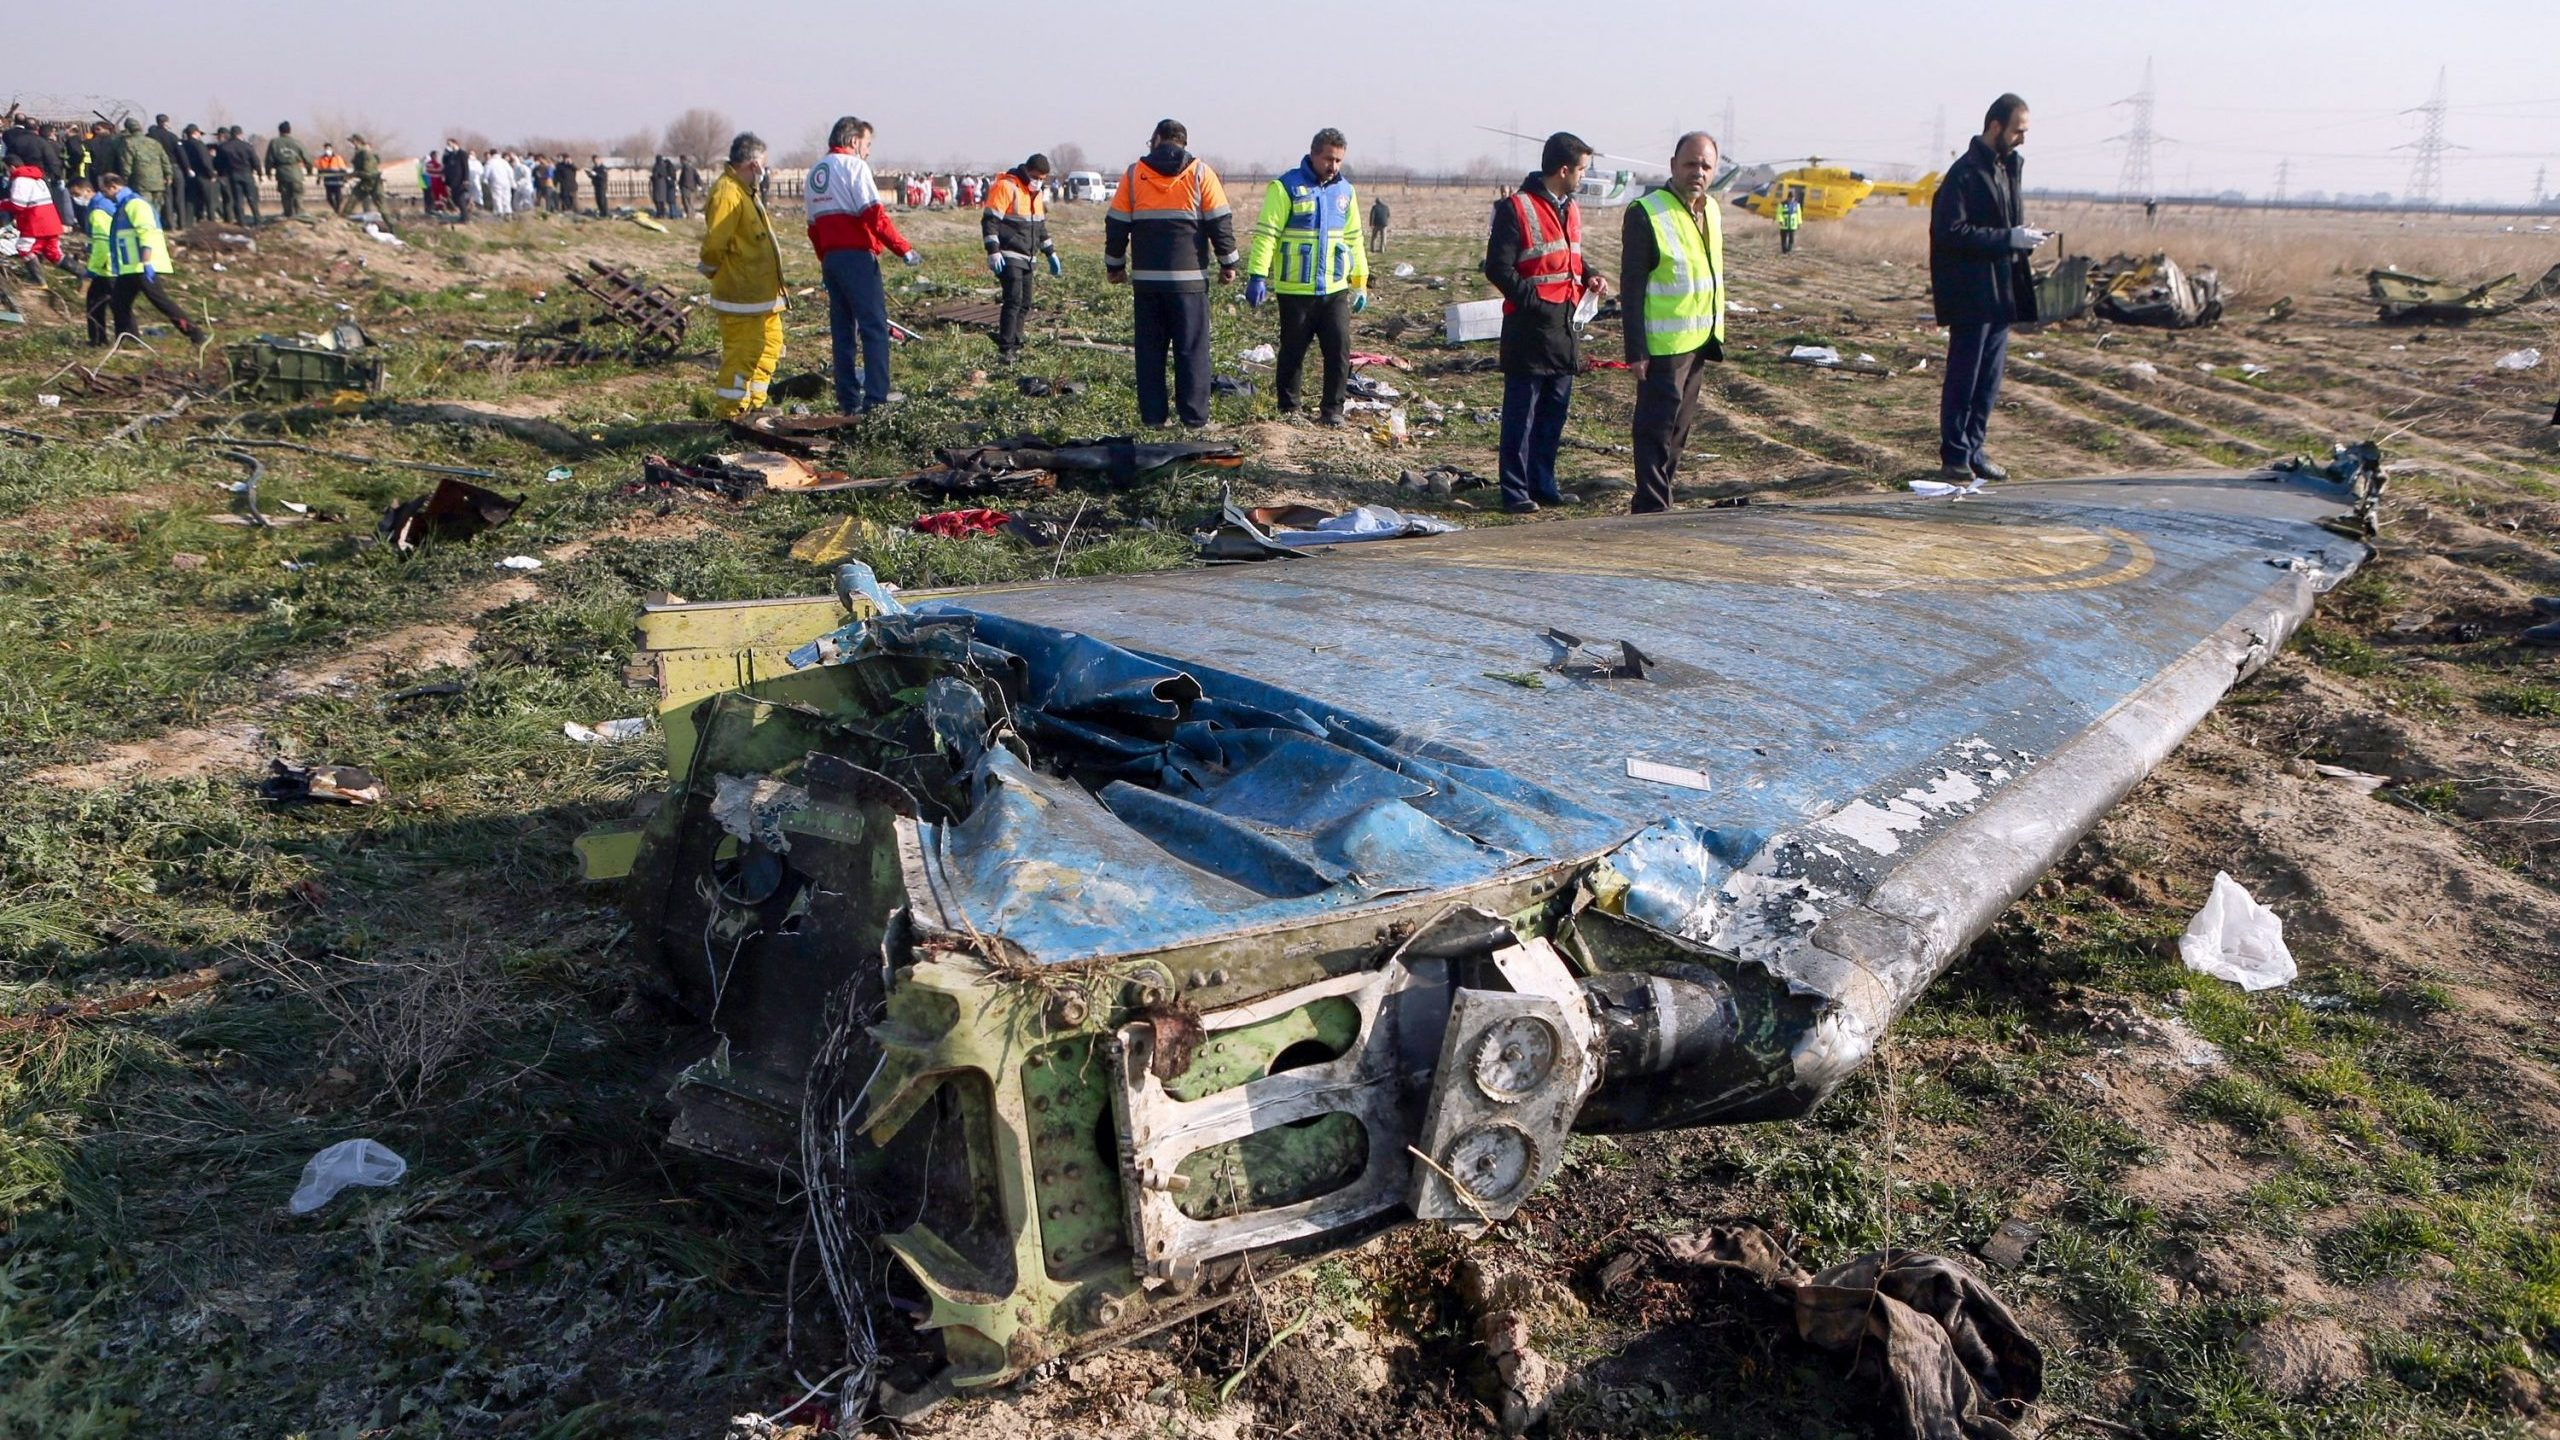 Rescue teams respond to the scene of a Ukrainian airliner that crashed shortly after takeoff from Imam Khomeini airport in the Iranian capital Tehran on Jan. 8, 2020. (Credit: Akbar Tavakoli / IRNA / AFP / Getty Images)